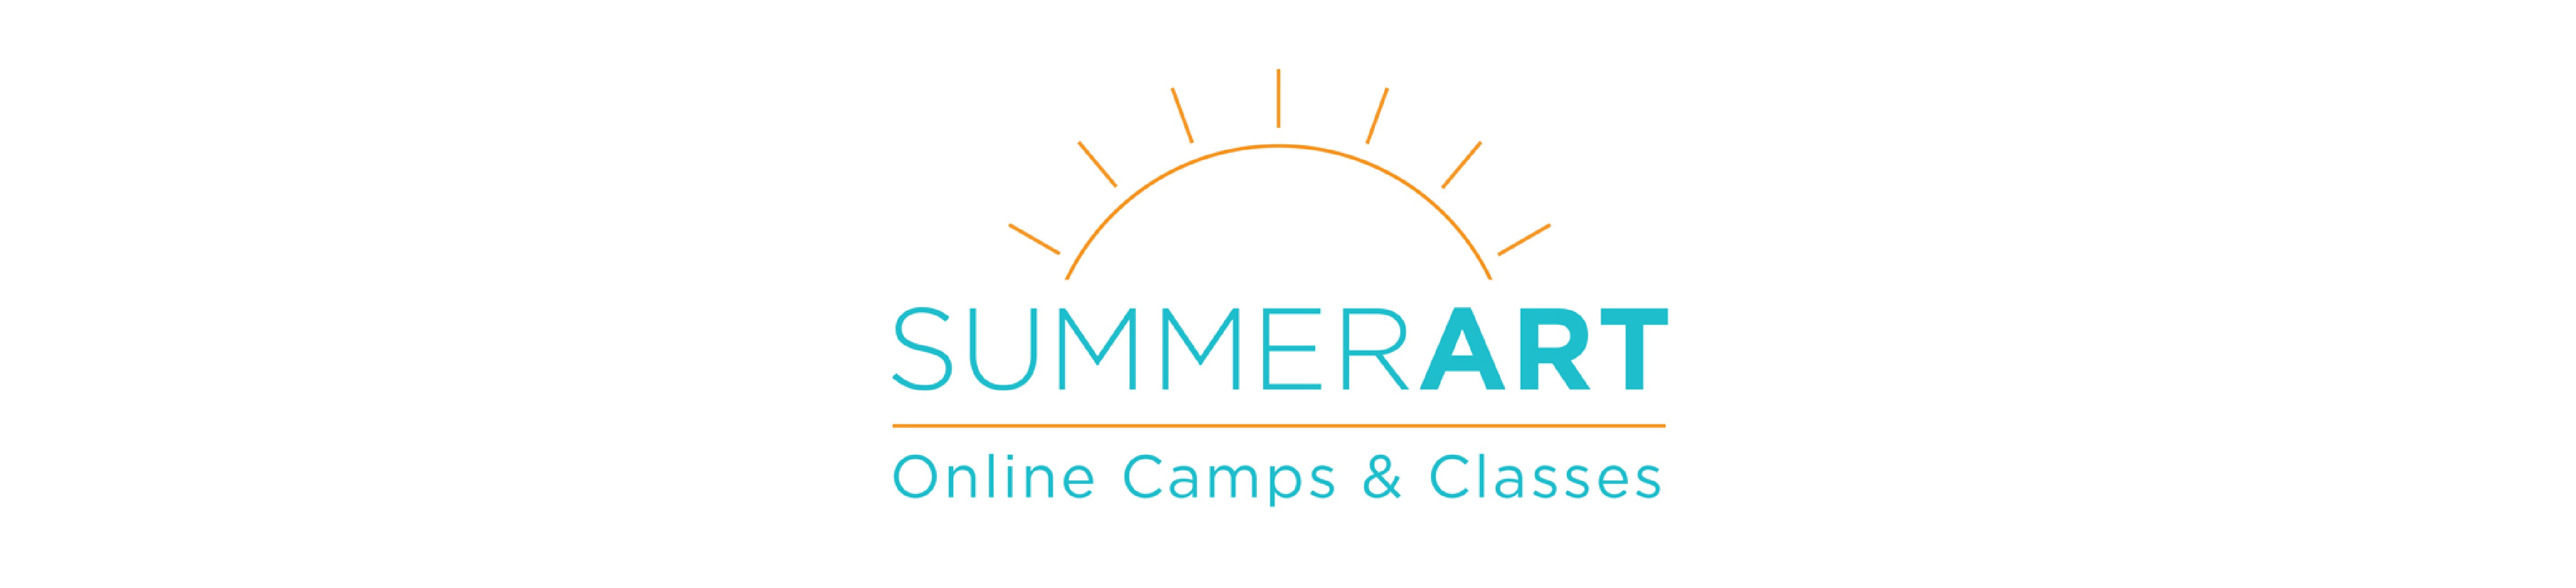 I'm an image! A white, wide rectangle with the SummerART online 2020 logo in the center. The Logo says summerART online camps and classes and has a sun outline above it.